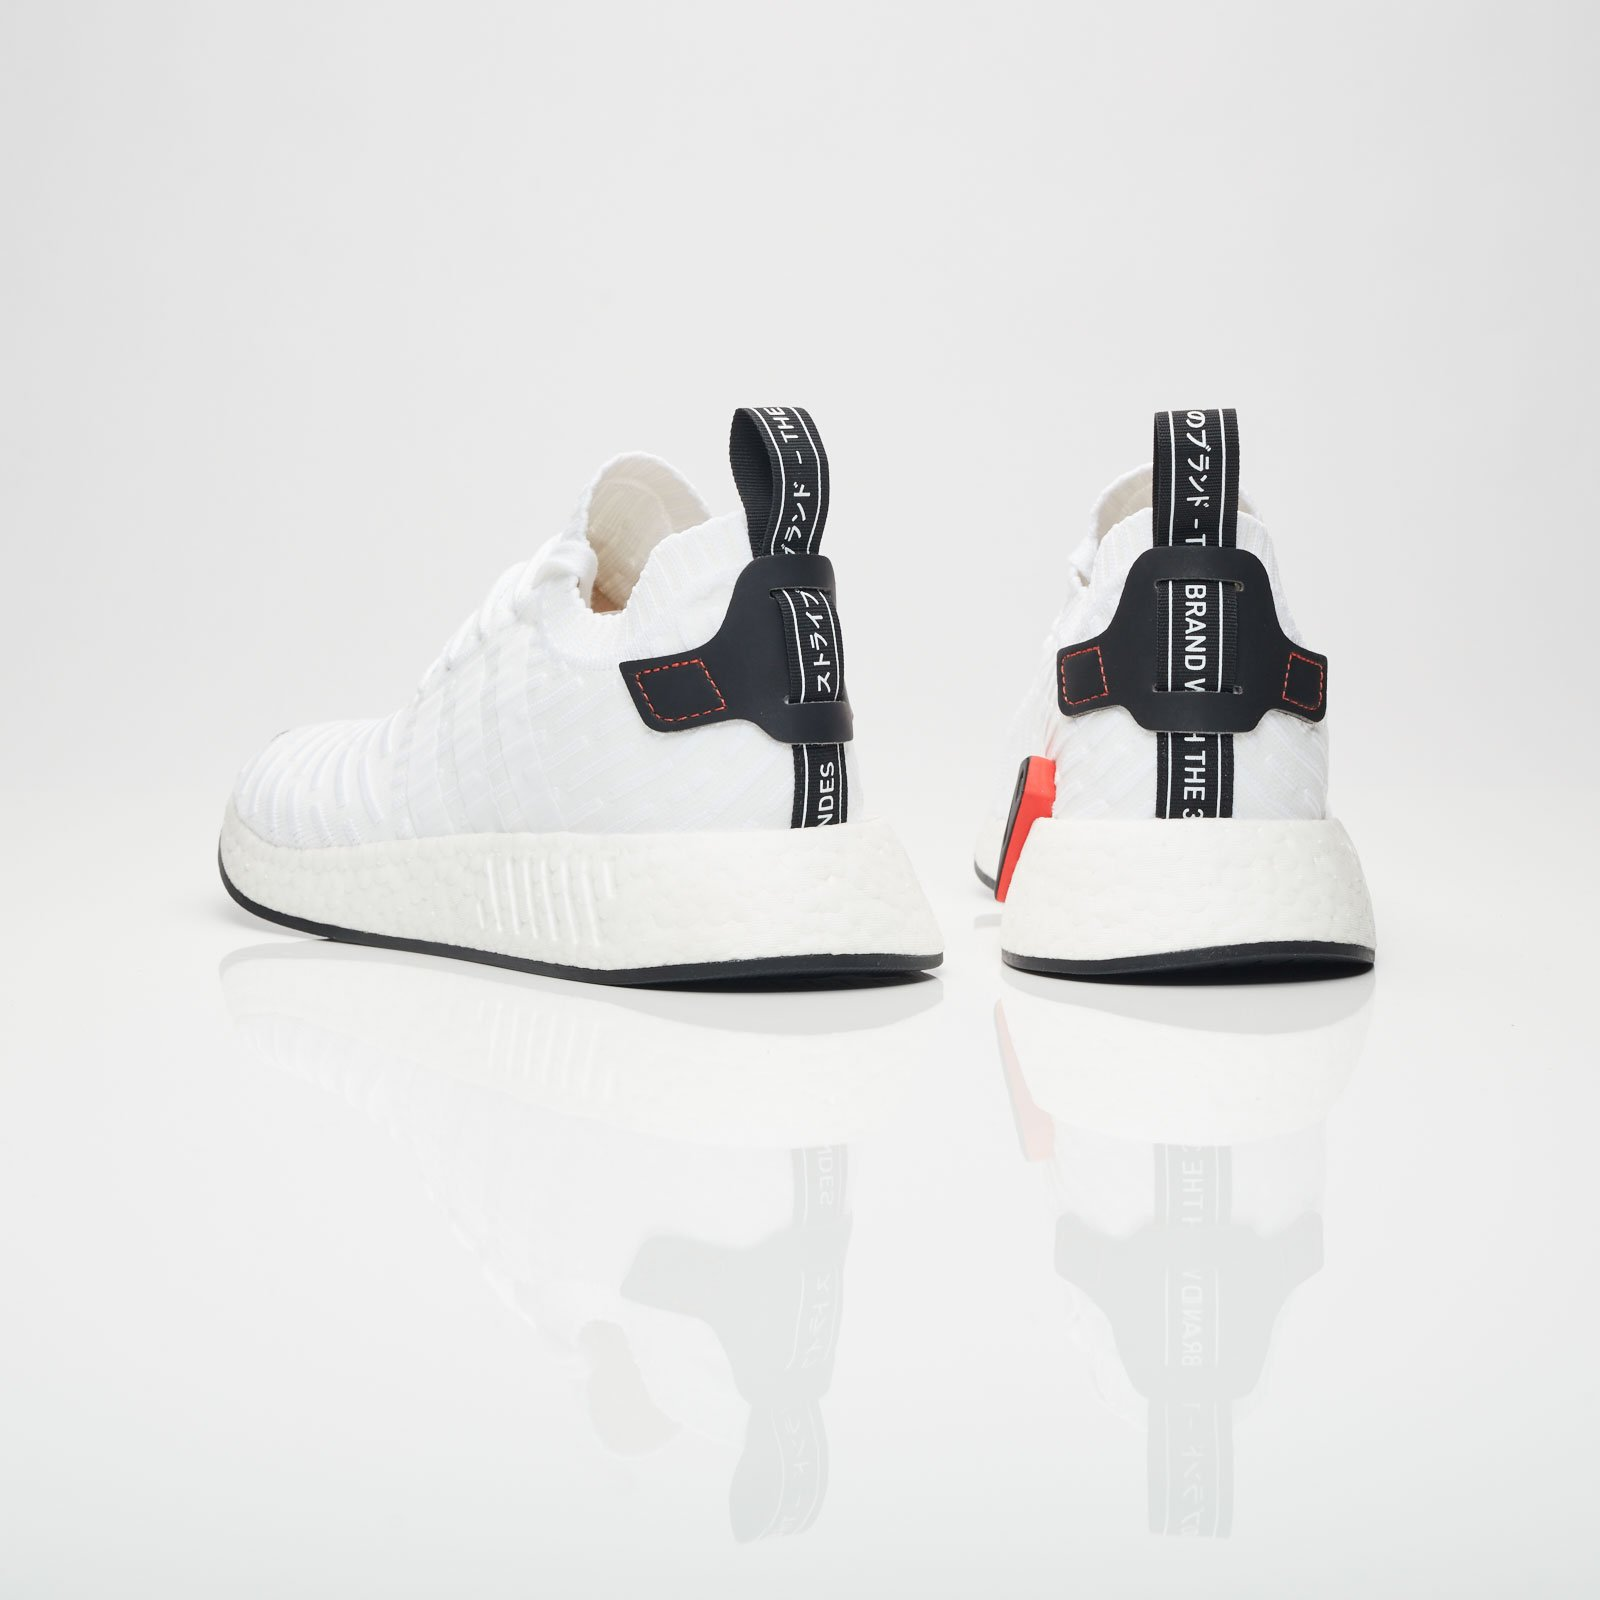 sports shoes c3743 2e61d adidas NMD_R2 PK - By3015 - Sneakersnstuff | sneakers ...